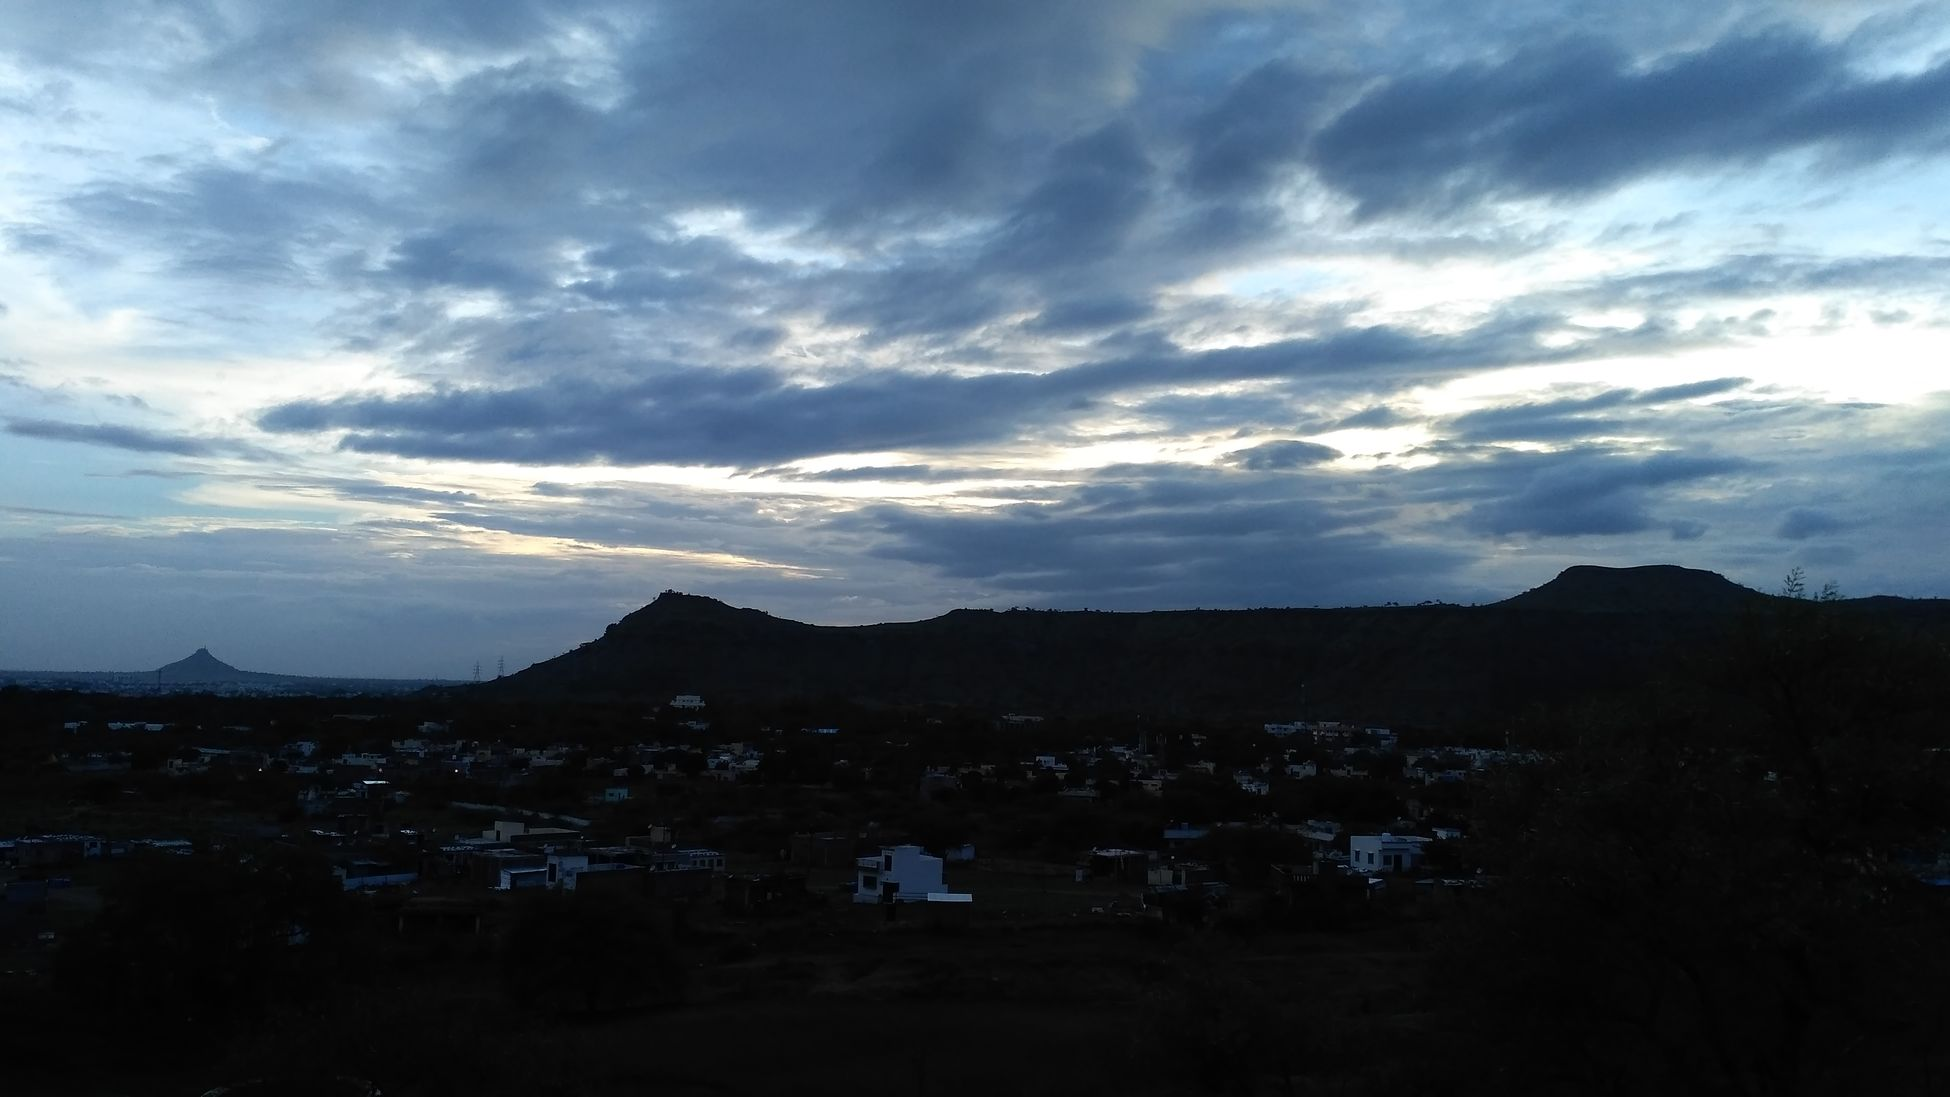 At Himmat Bag Hill Area High Angle View Rainy Day Sundown Skyview Cloudy Skies